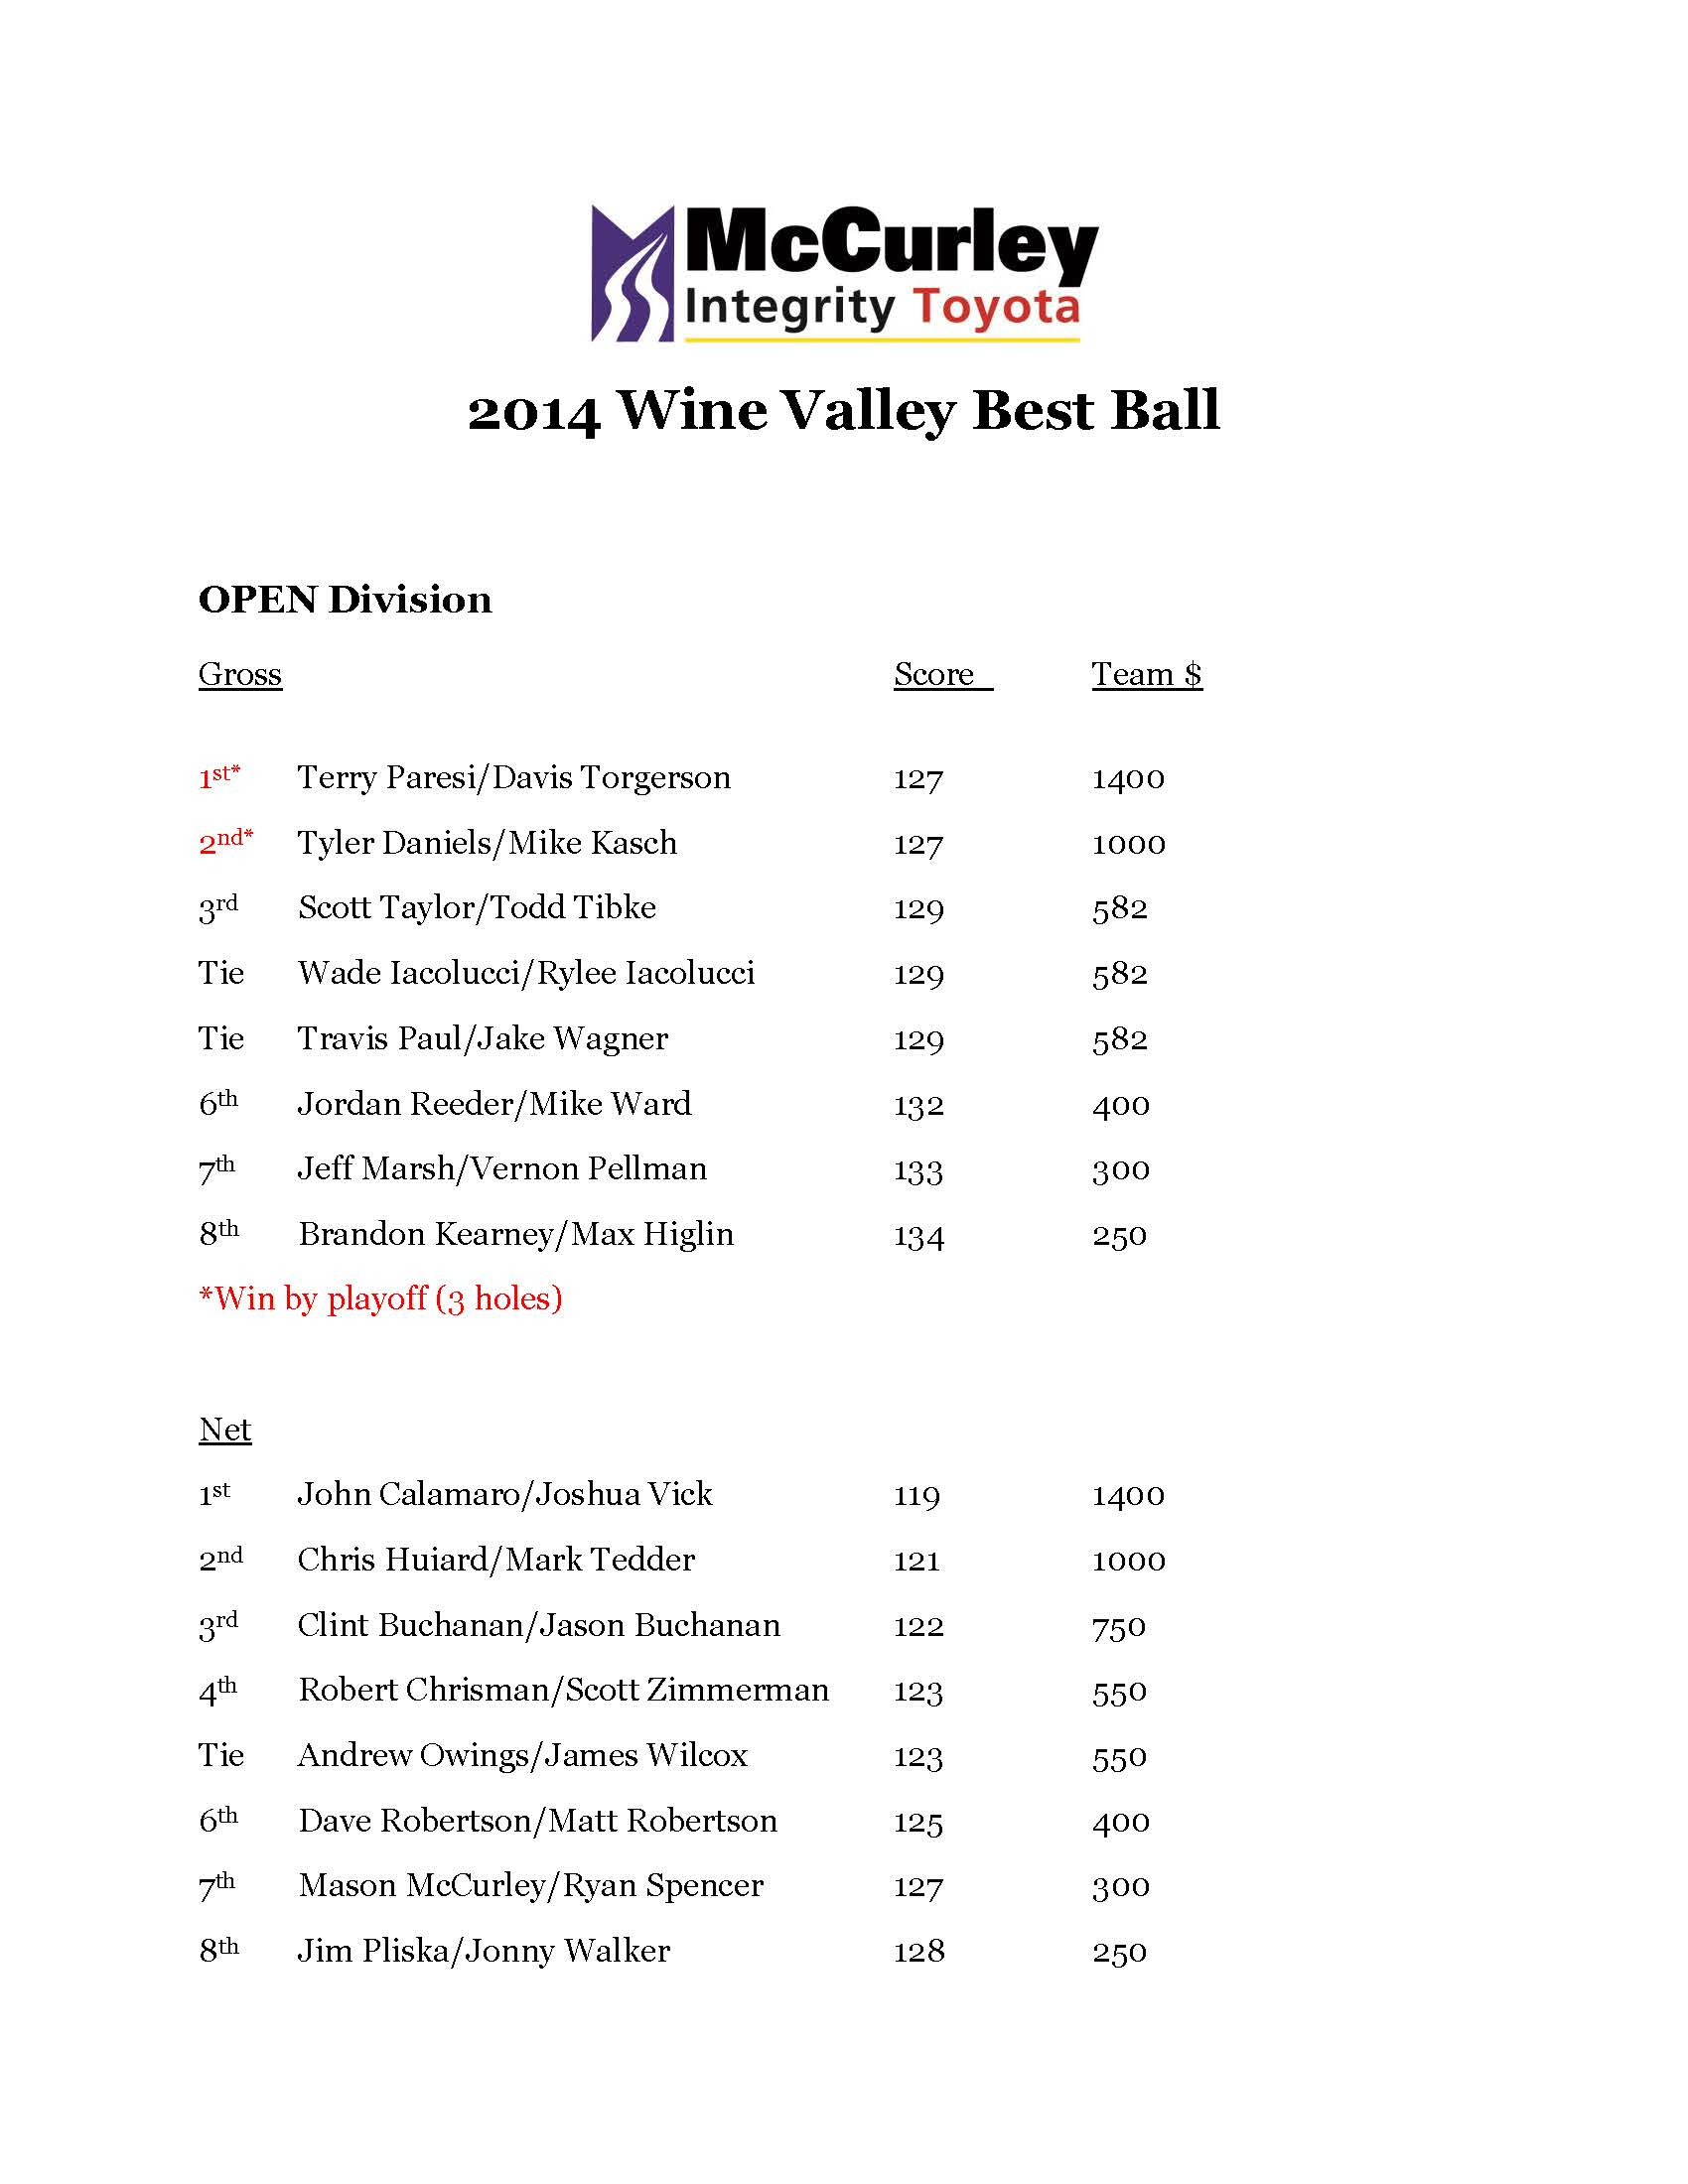 2014 wine valley best ball final results Page 1